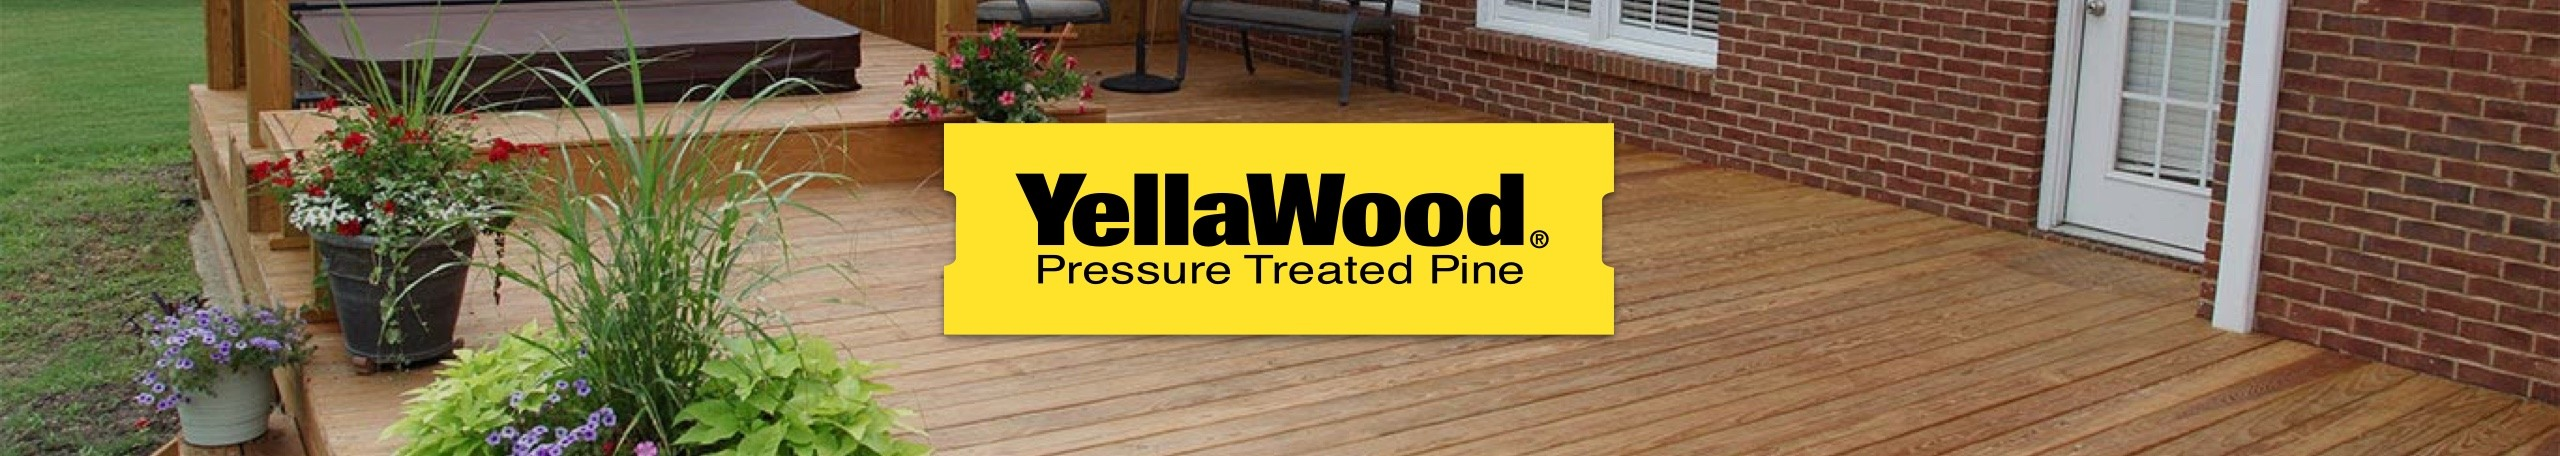 YellaWood logo with backyard deck and patio of brick home